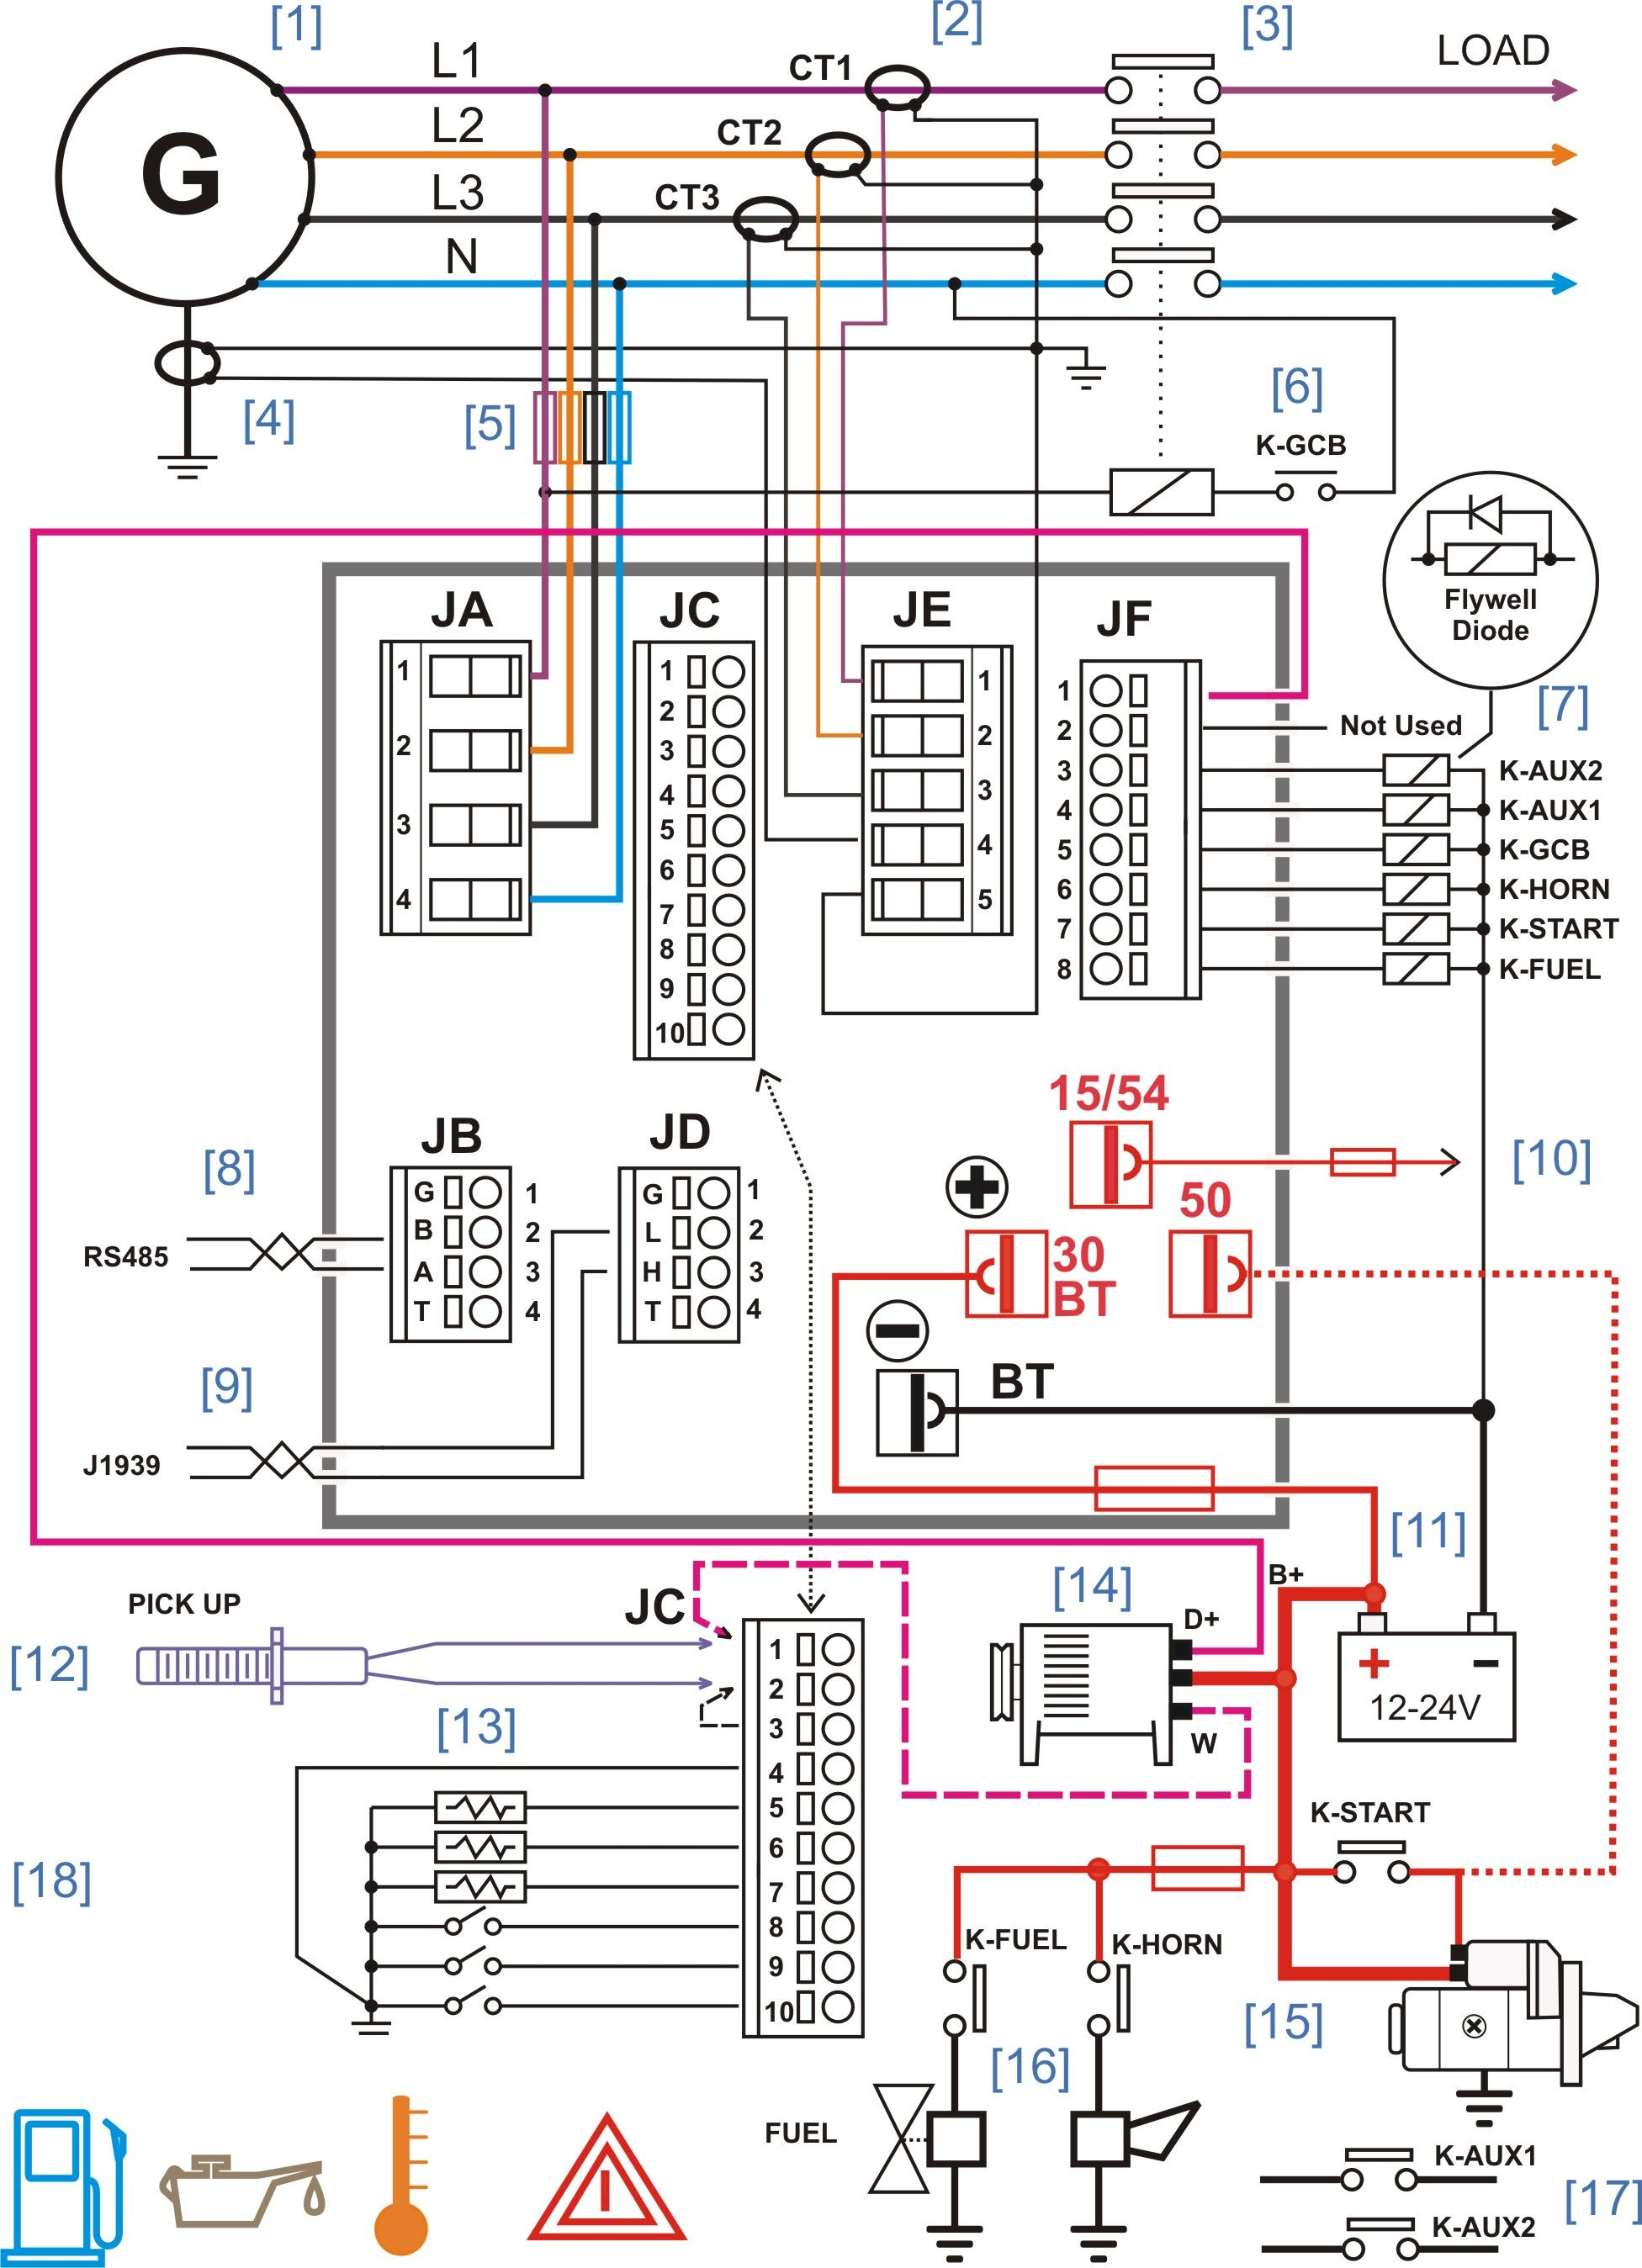 diesel generator control panel wiring diagram diesel generators rh pinterest com wiring diagram for a starter generator wiring diagram for generator changeover switch